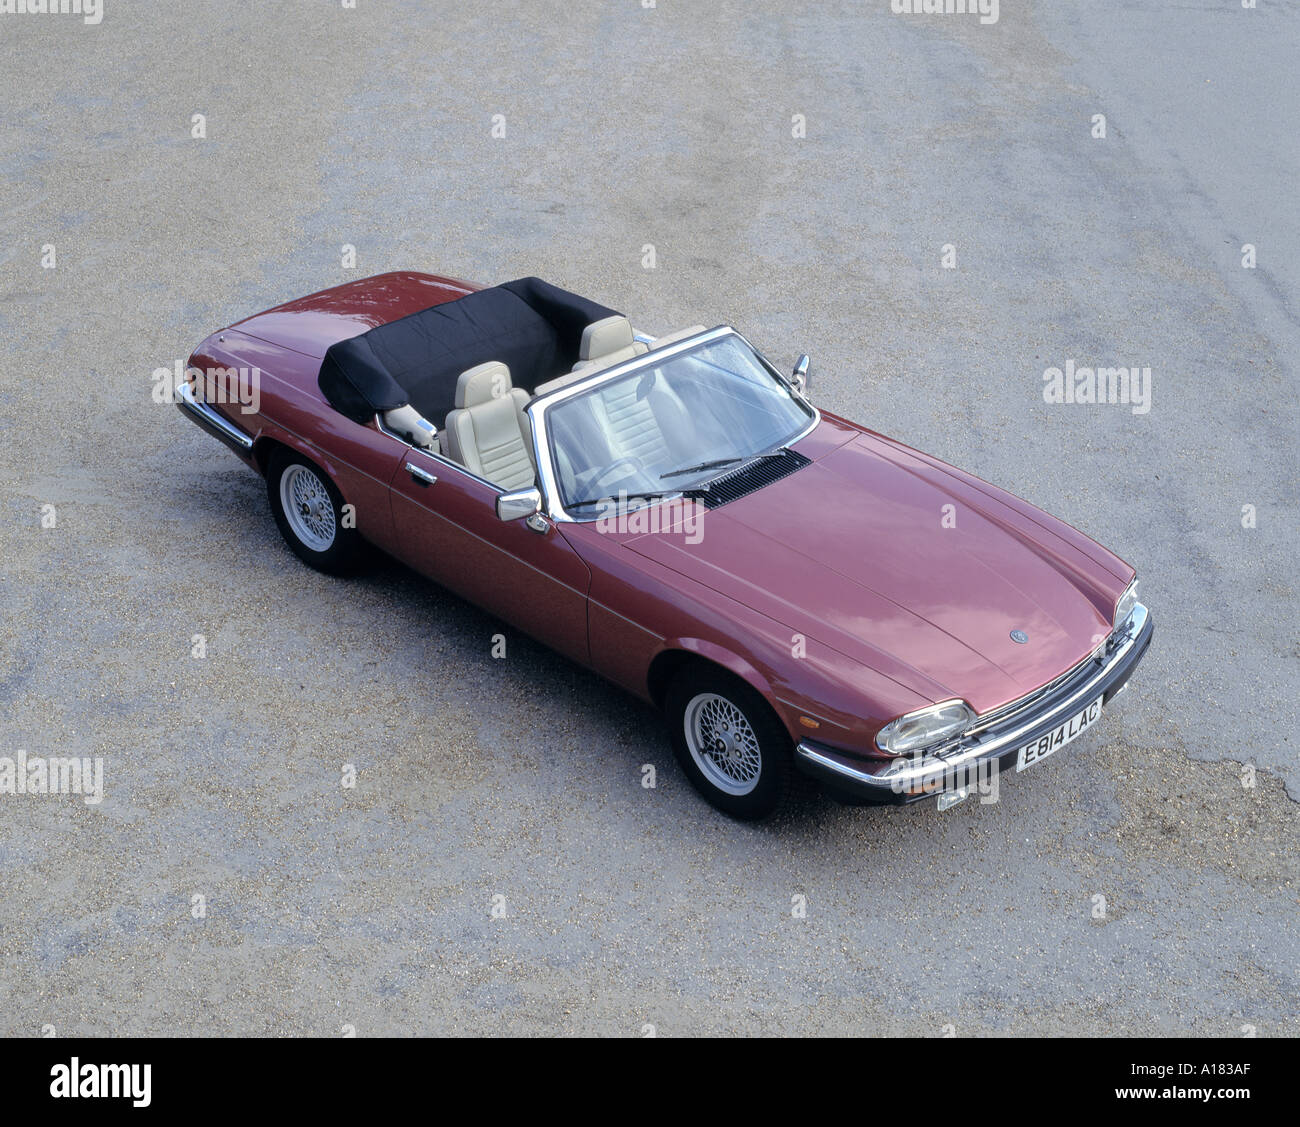 1988 Jaguar XJS V12 convertible - Stock Image